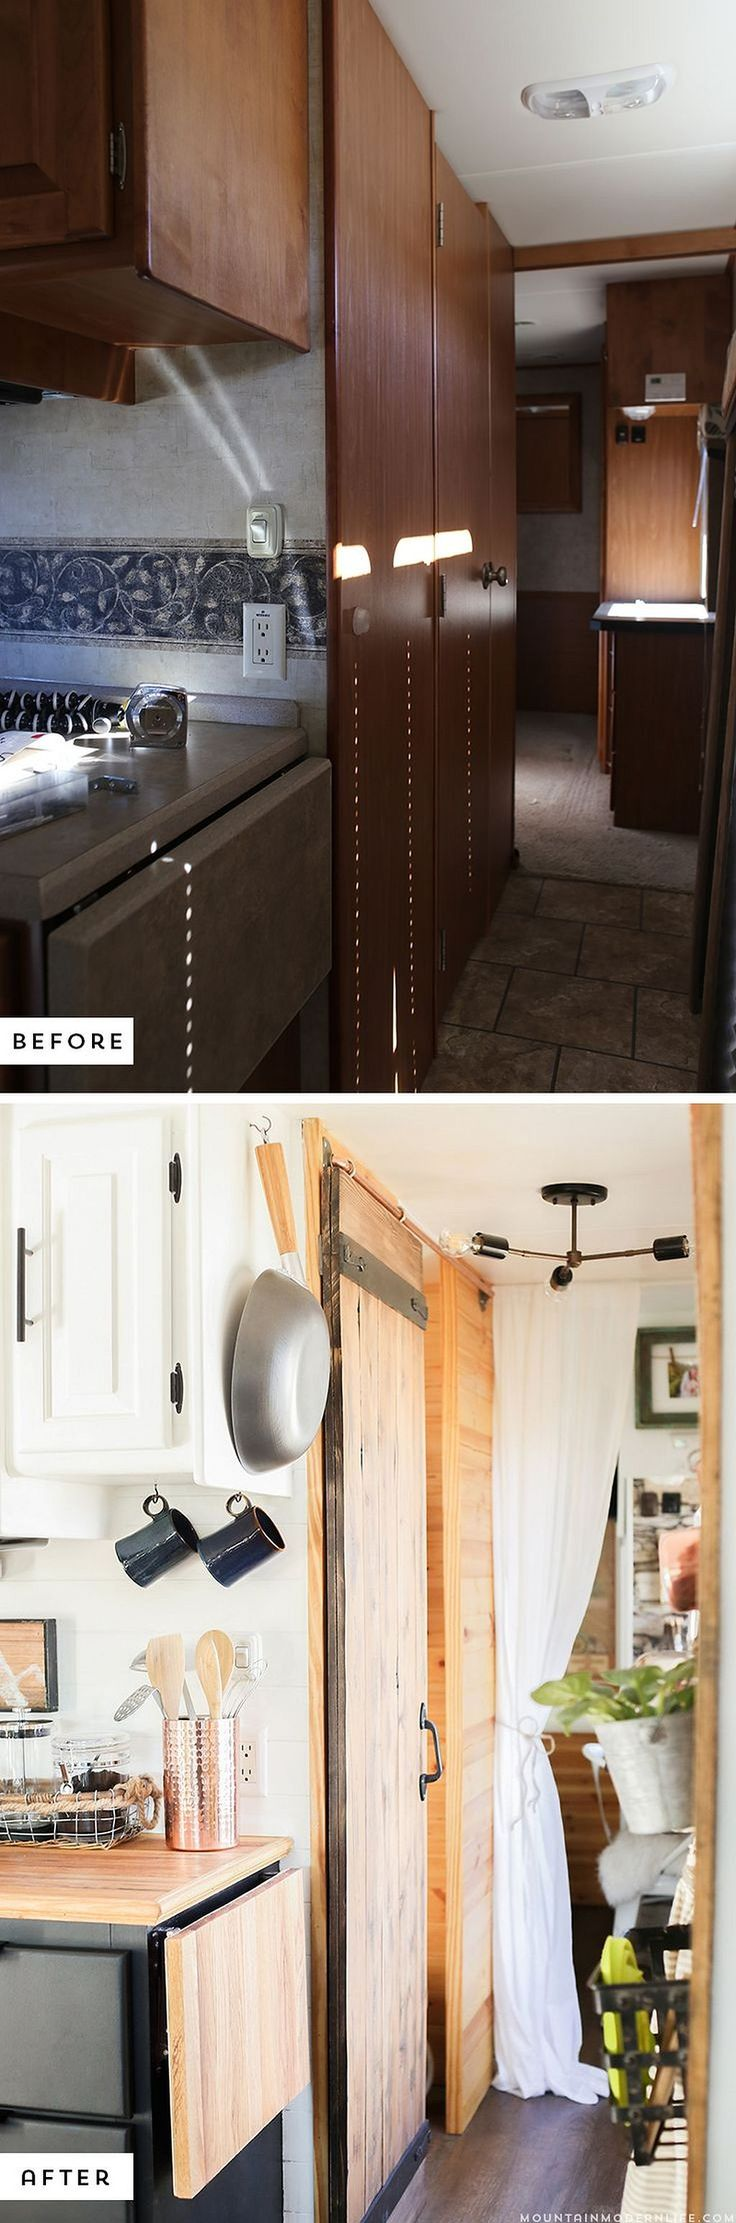 Nice 30 Easy RV Camper Remodel Ideas with Before and After Comparison https://pinarchitecture.com/30-easy-rv-camper-remodel-ideas-with-before-and-after-comparison/